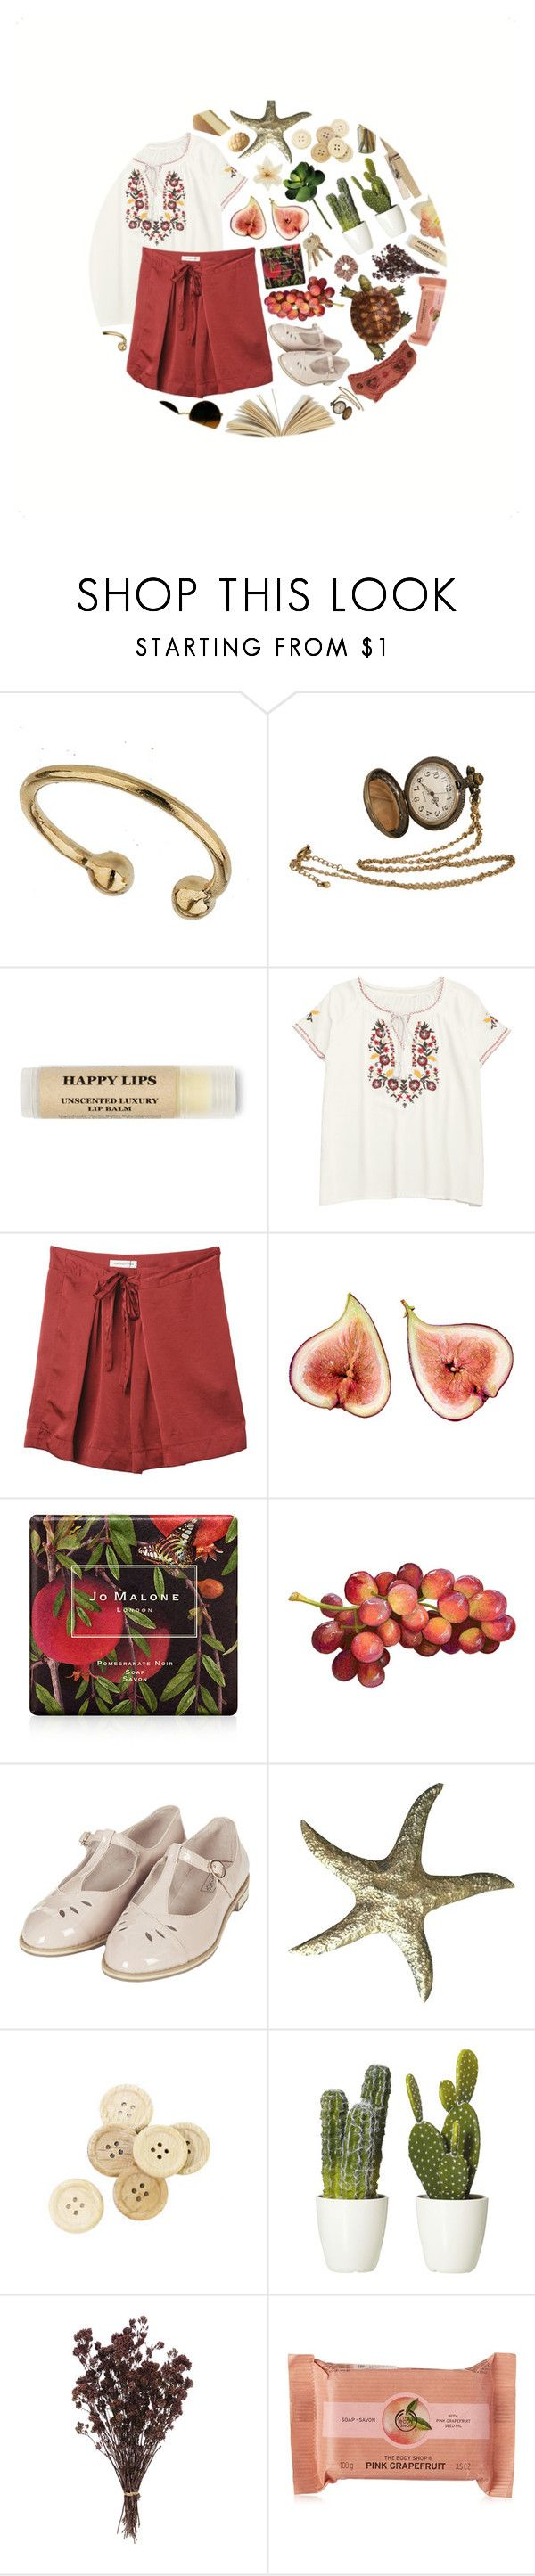 """obsessed"" by katykitty5397 ❤ liked on Polyvore featuring Miss Selfridge, Clips, Isabel Marant, Jo Malone, Topshop, Again, C.R.A.F.T., The Body Shop, red and GREEN"